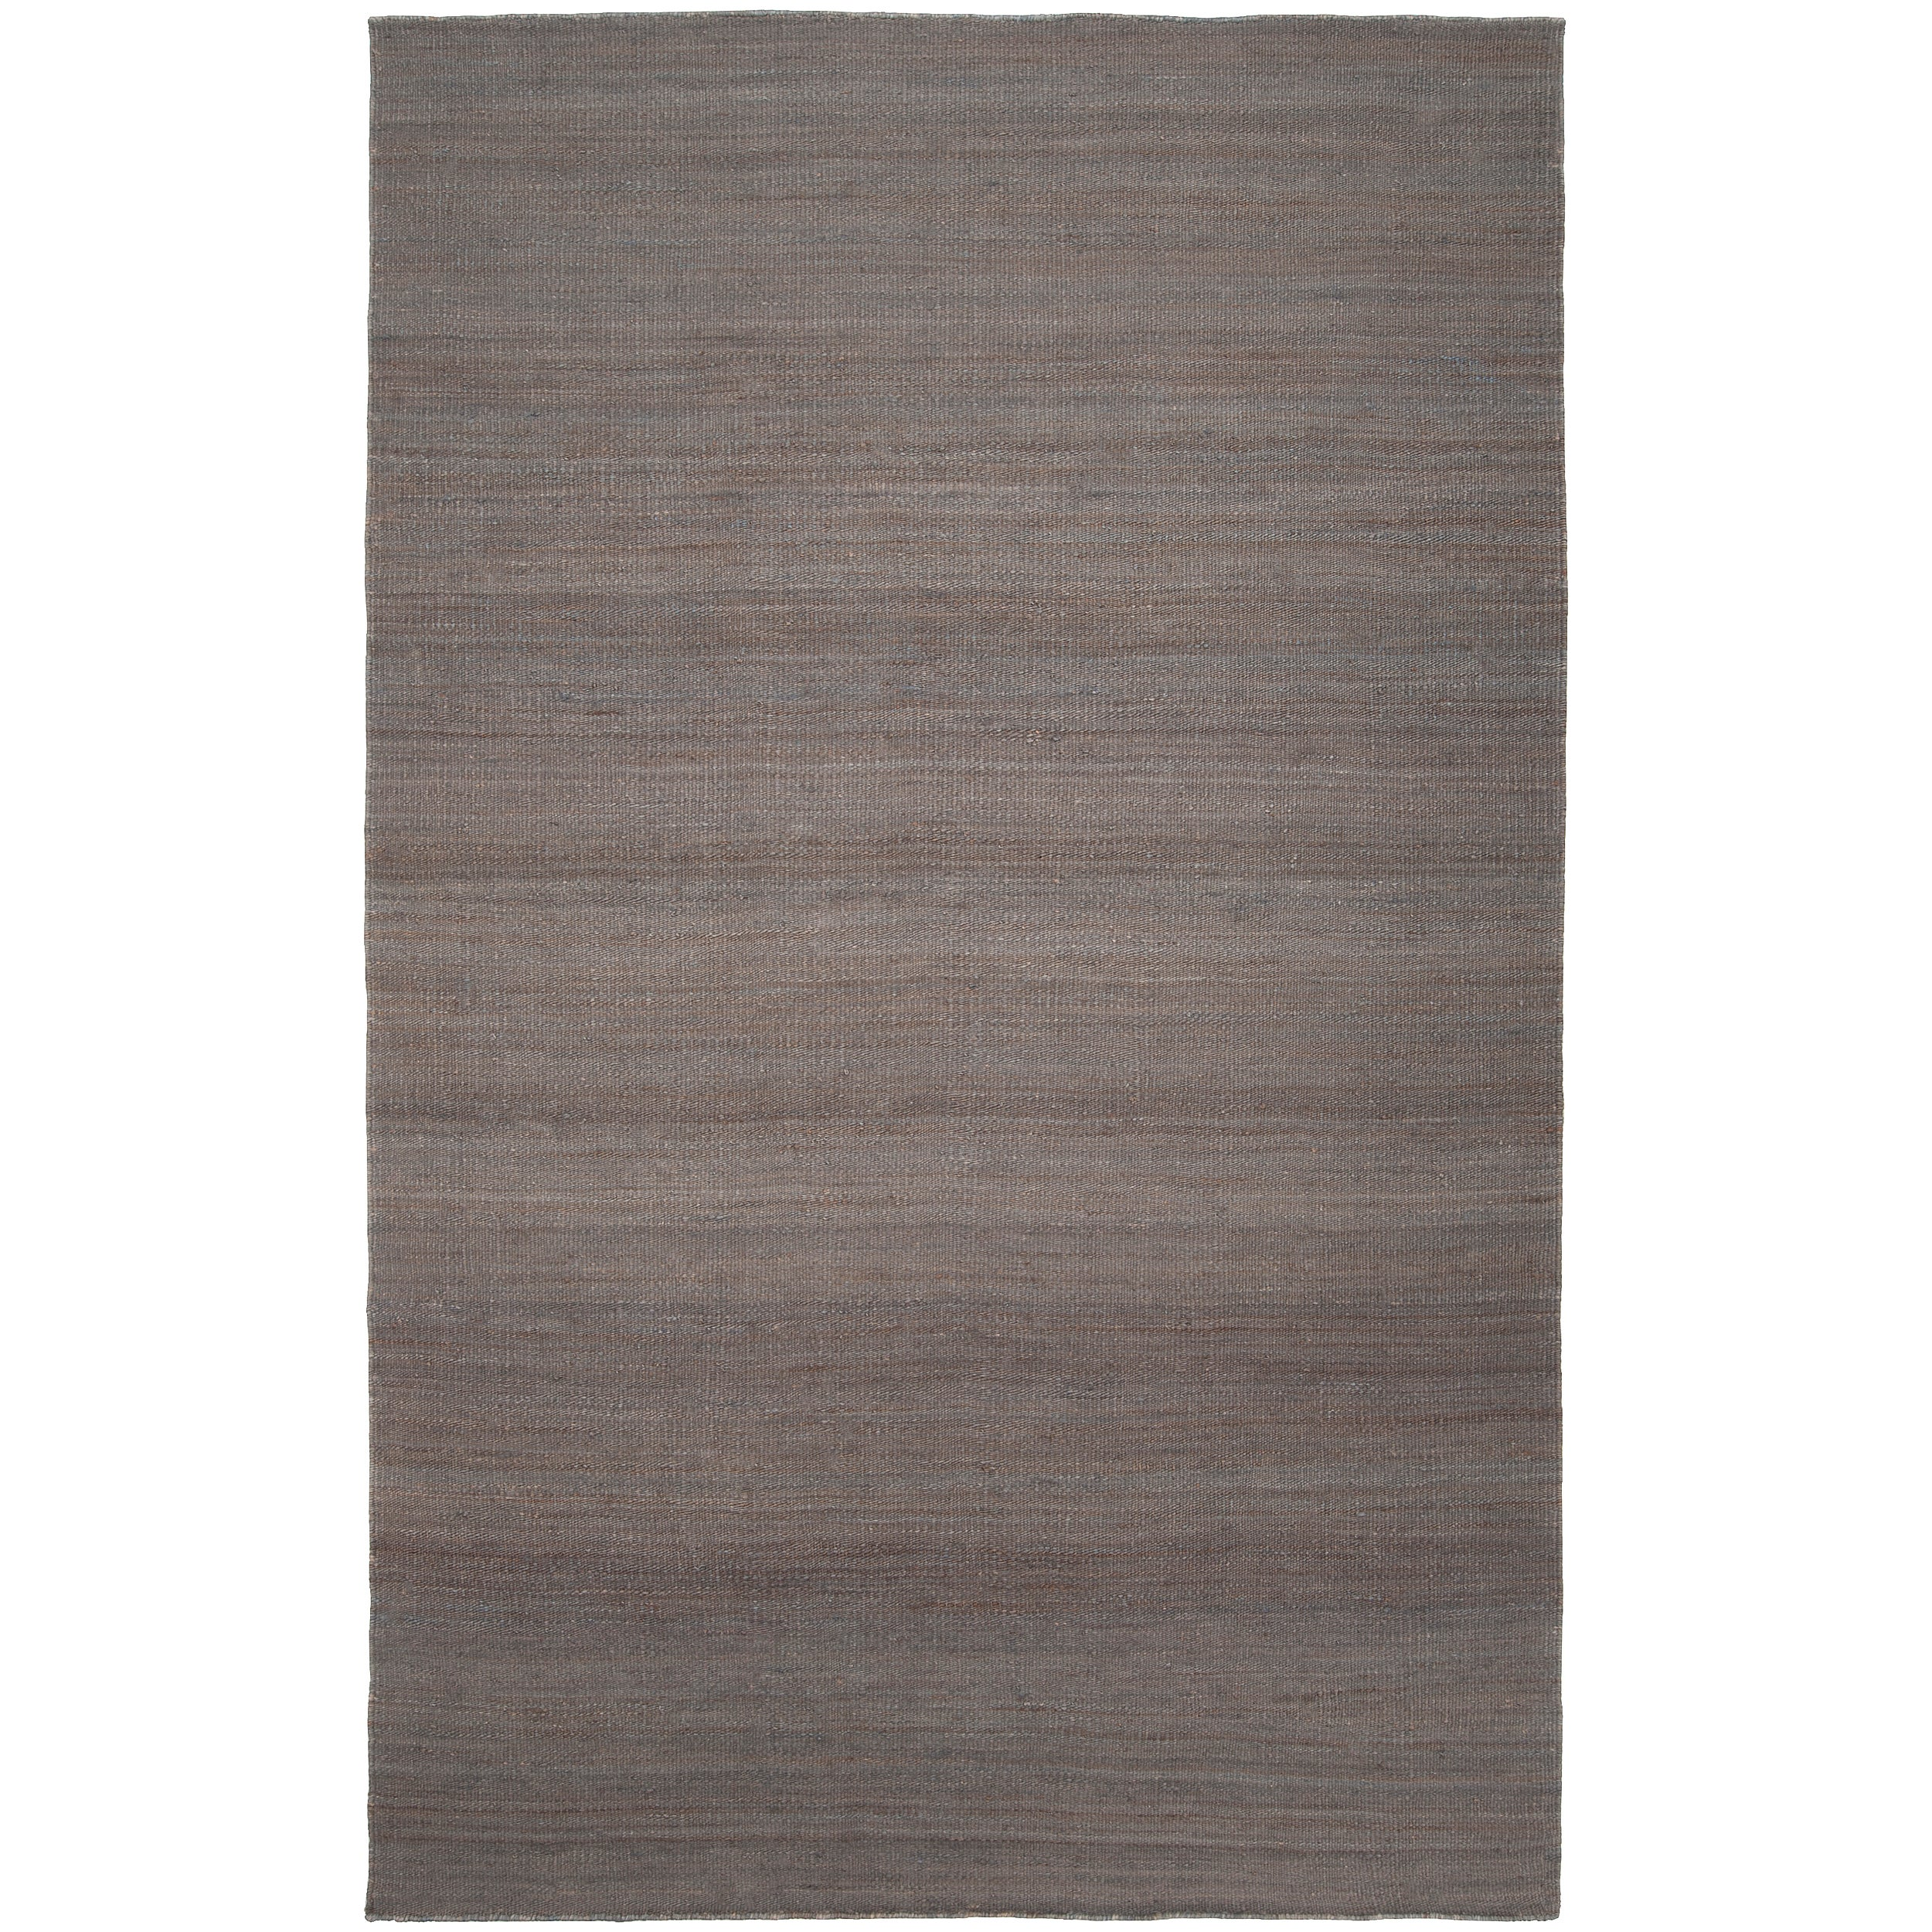 Hand-woven Redwood Pale Blue Reversible Jute Rug Area Rug (2' x 3')